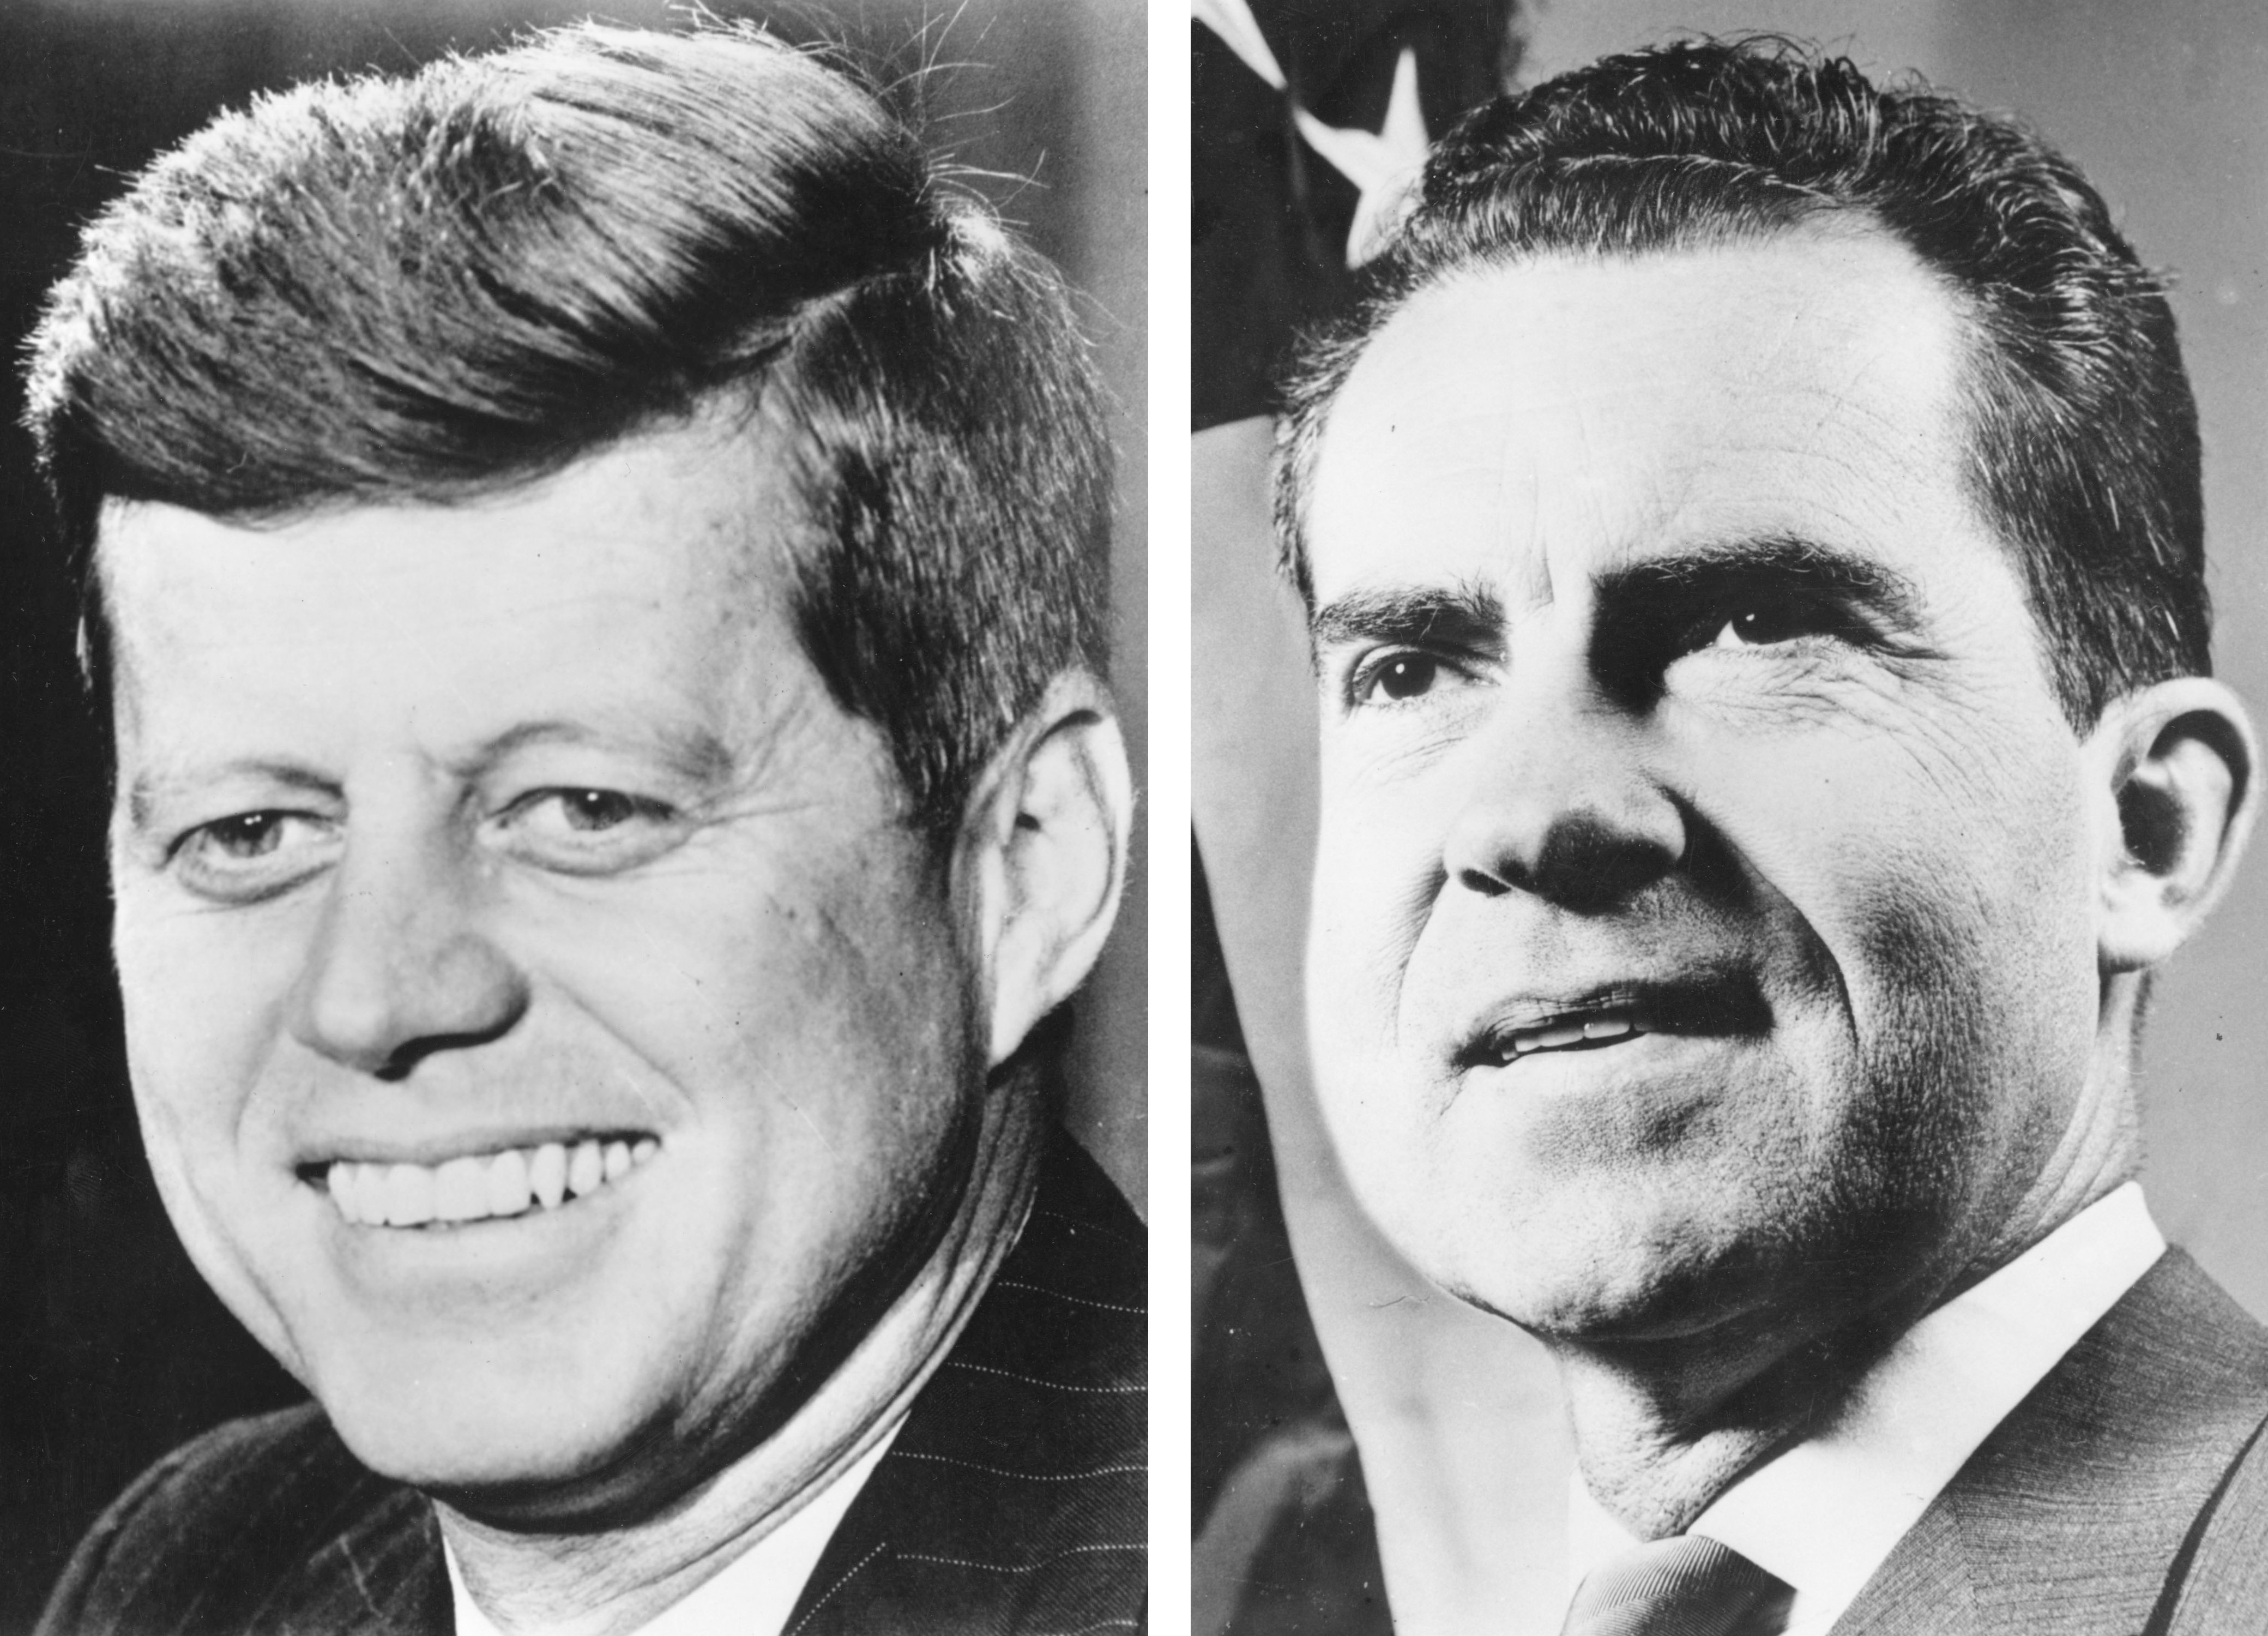 John F Kennedy v Richard Nixon